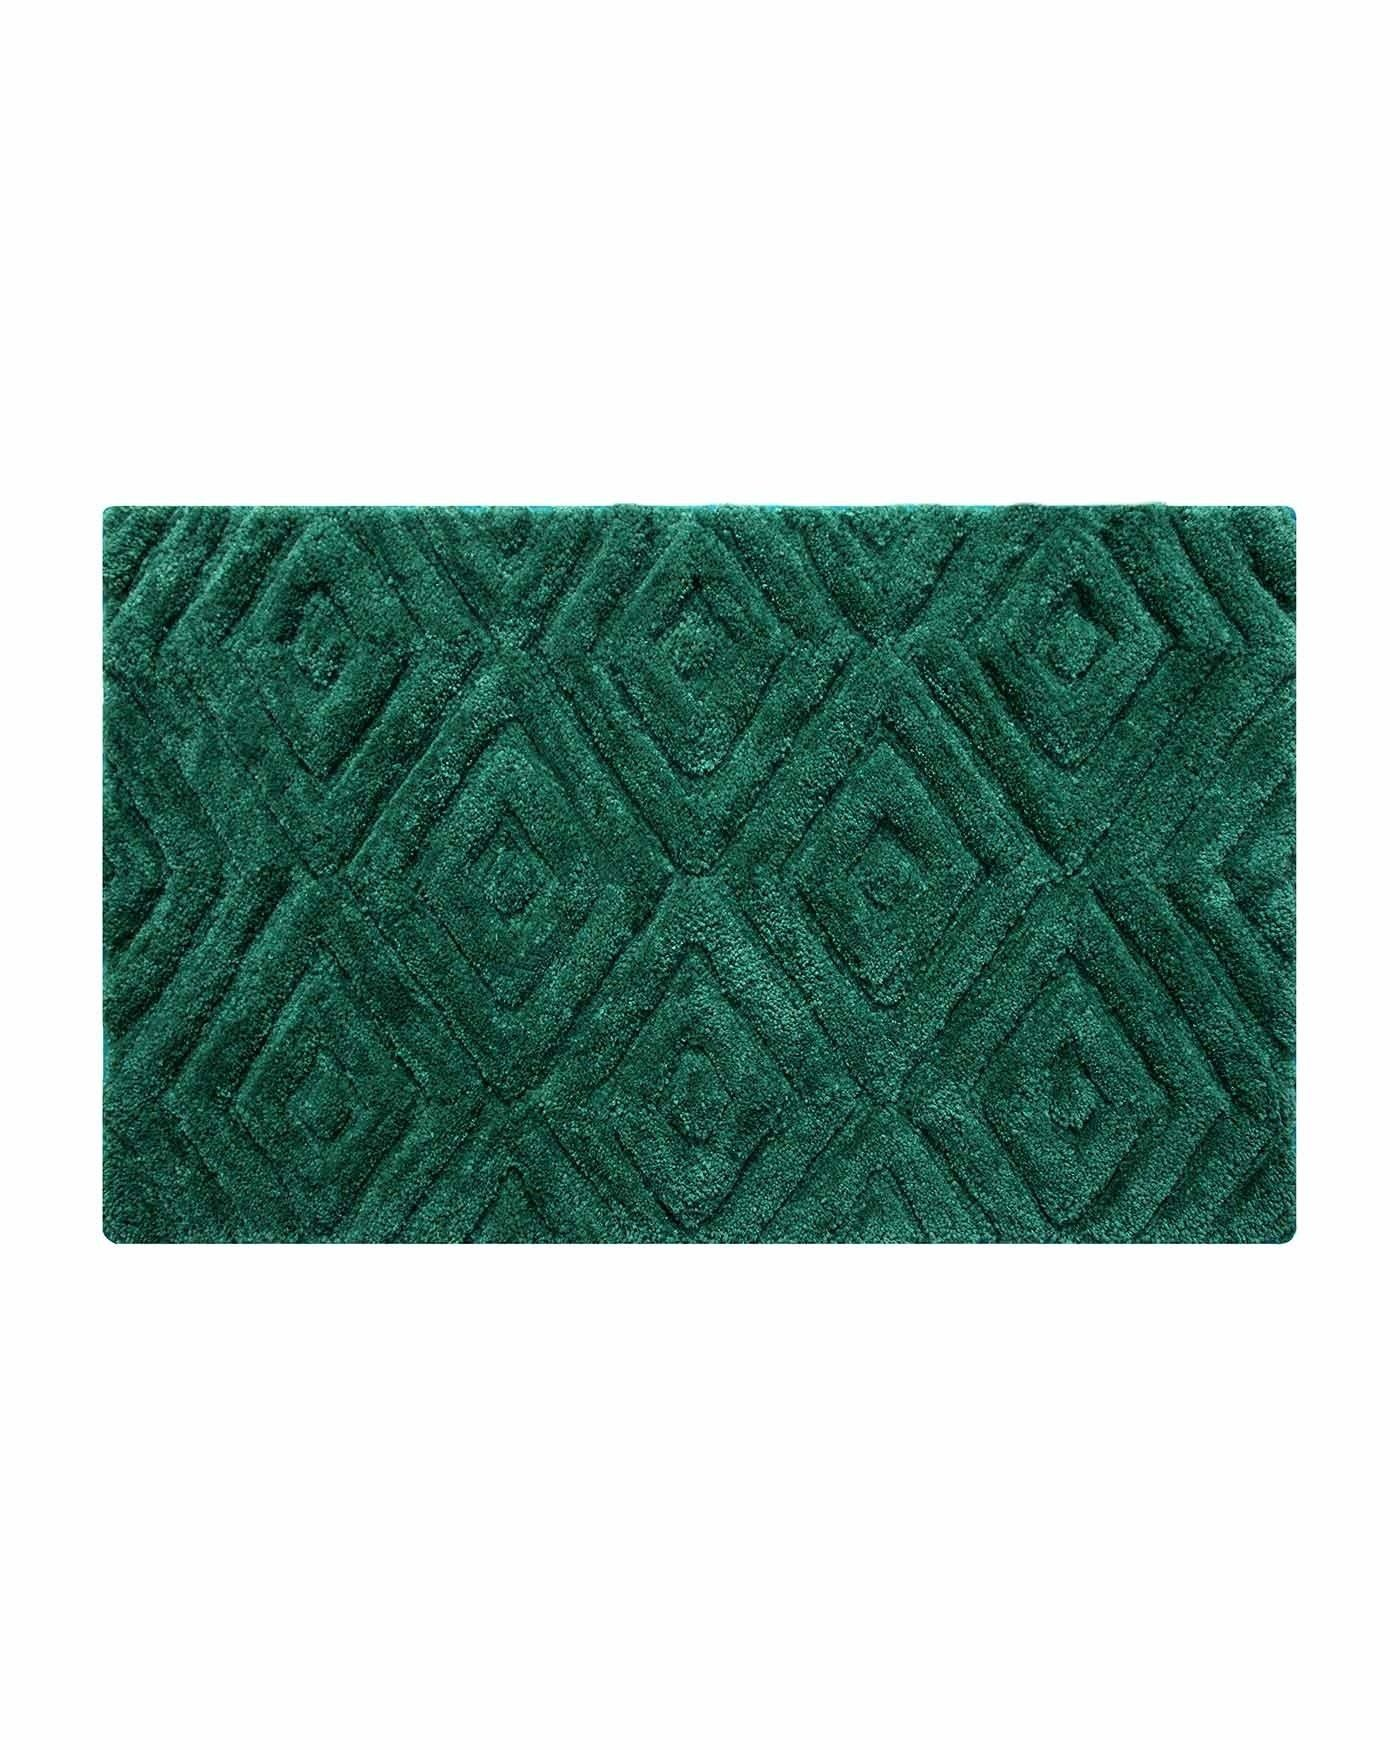 Thick Pile Emerald Green Bathmat This Large Bathroom Floor Mat